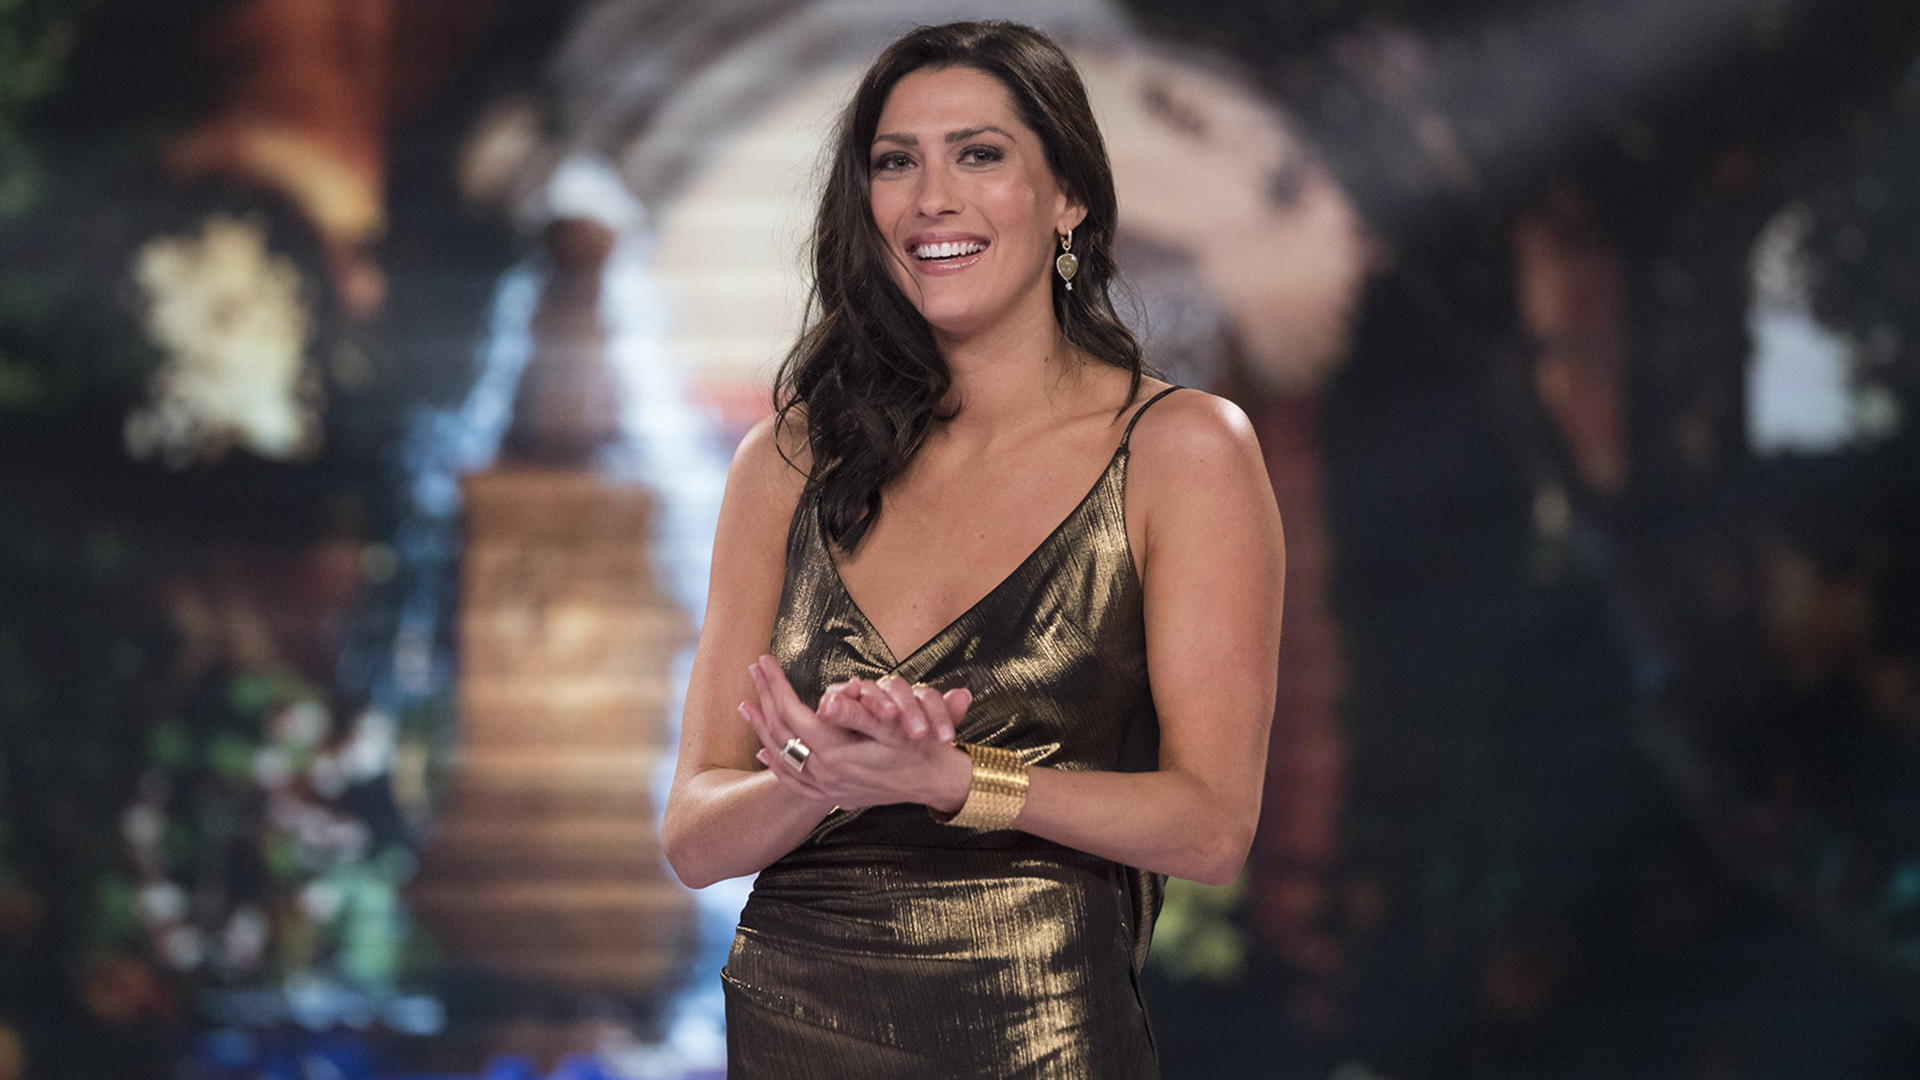 Bachelorette' Becca Kufrin donates $6,000 worth of 'beer